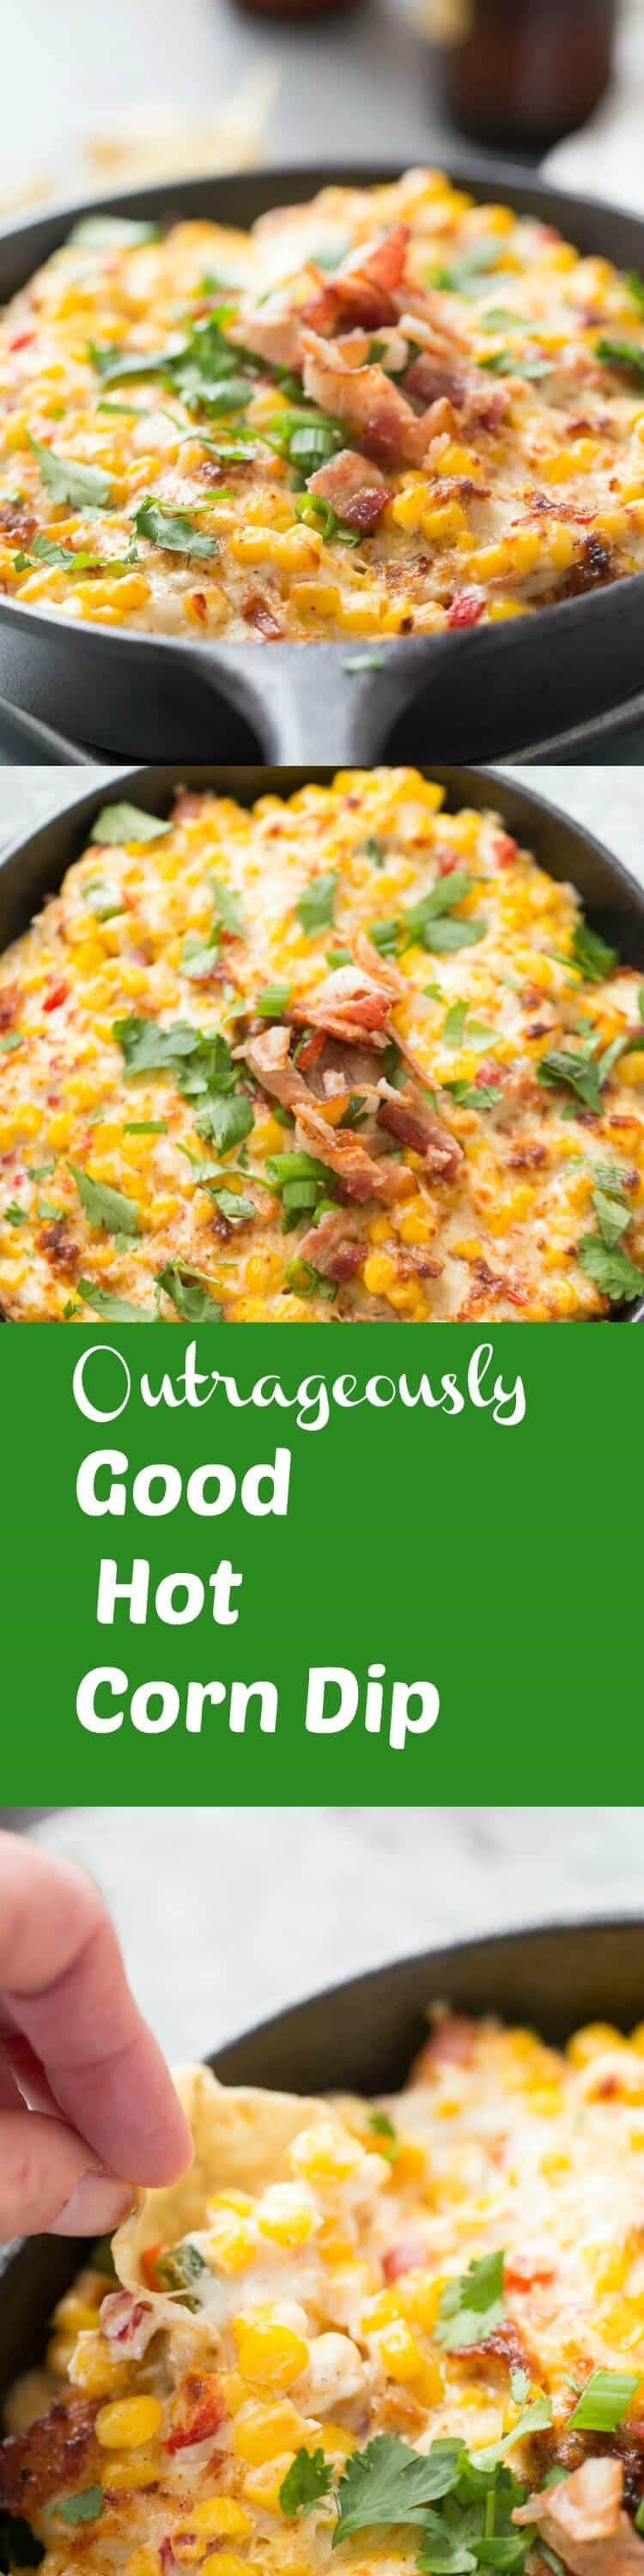 Nothing beats this hot corn dip when it comes to flavor! The hot, bubbly, melty dip is so unforgettably good!